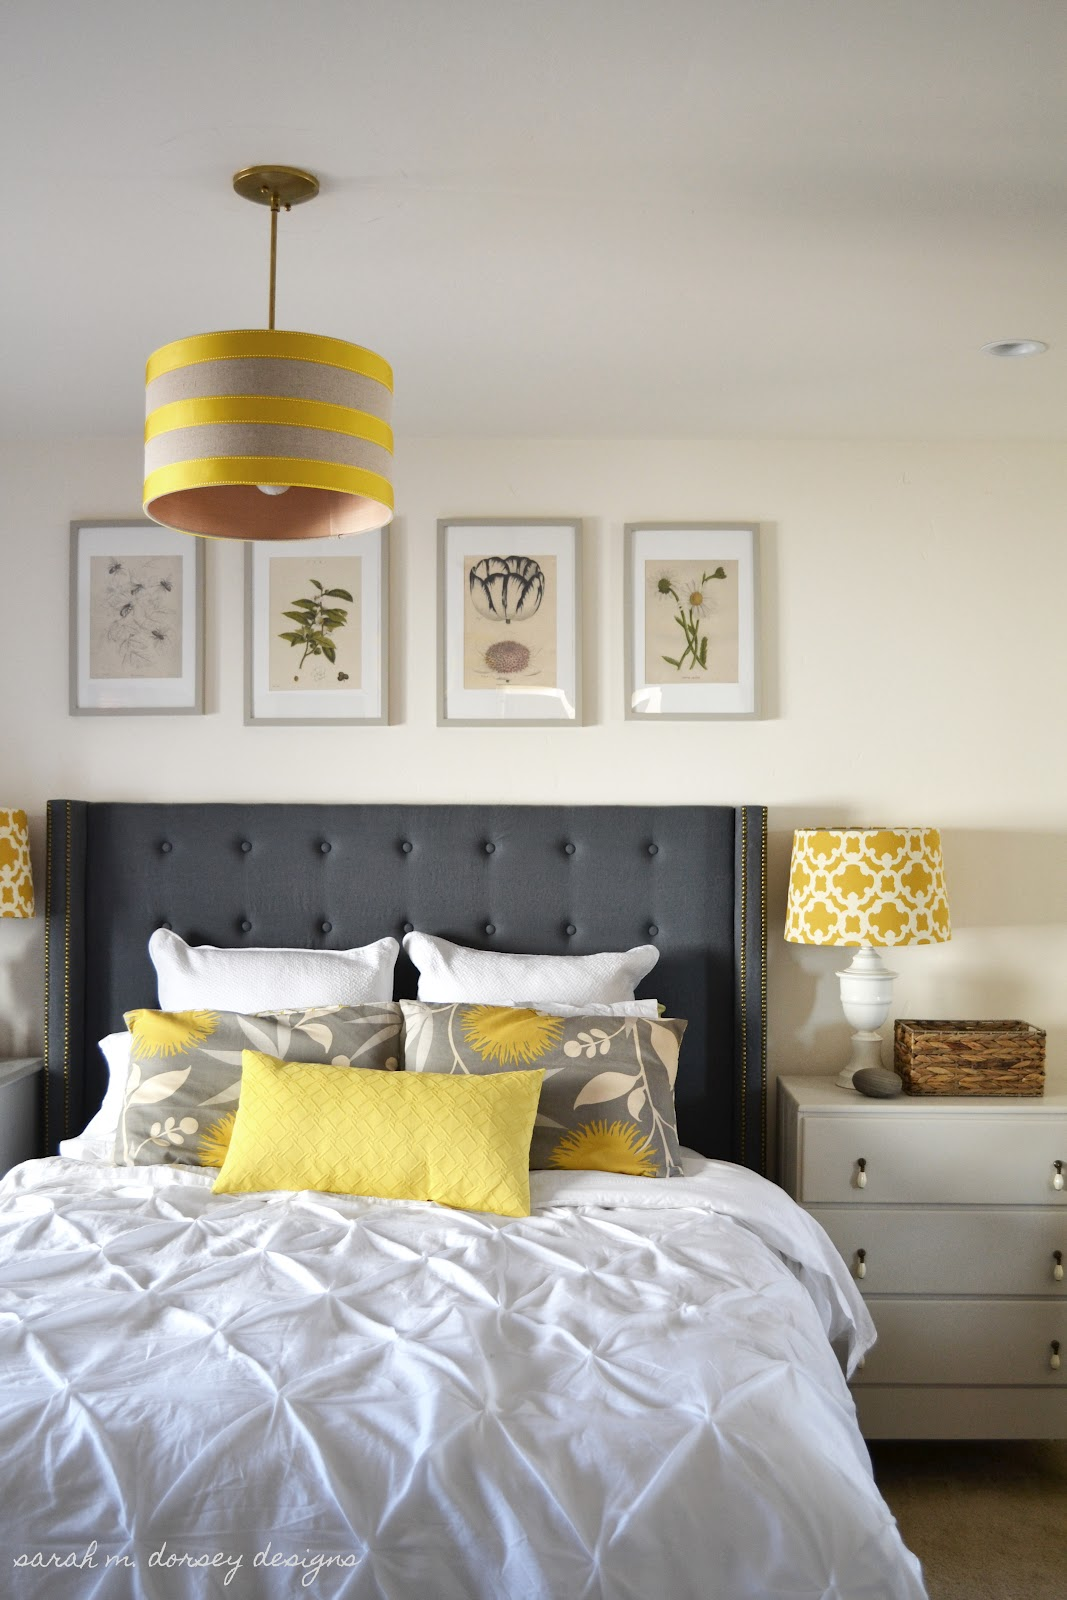 Sarah m dorsey designs art for above the headboard take 1 for Yellow grey bedroom designs